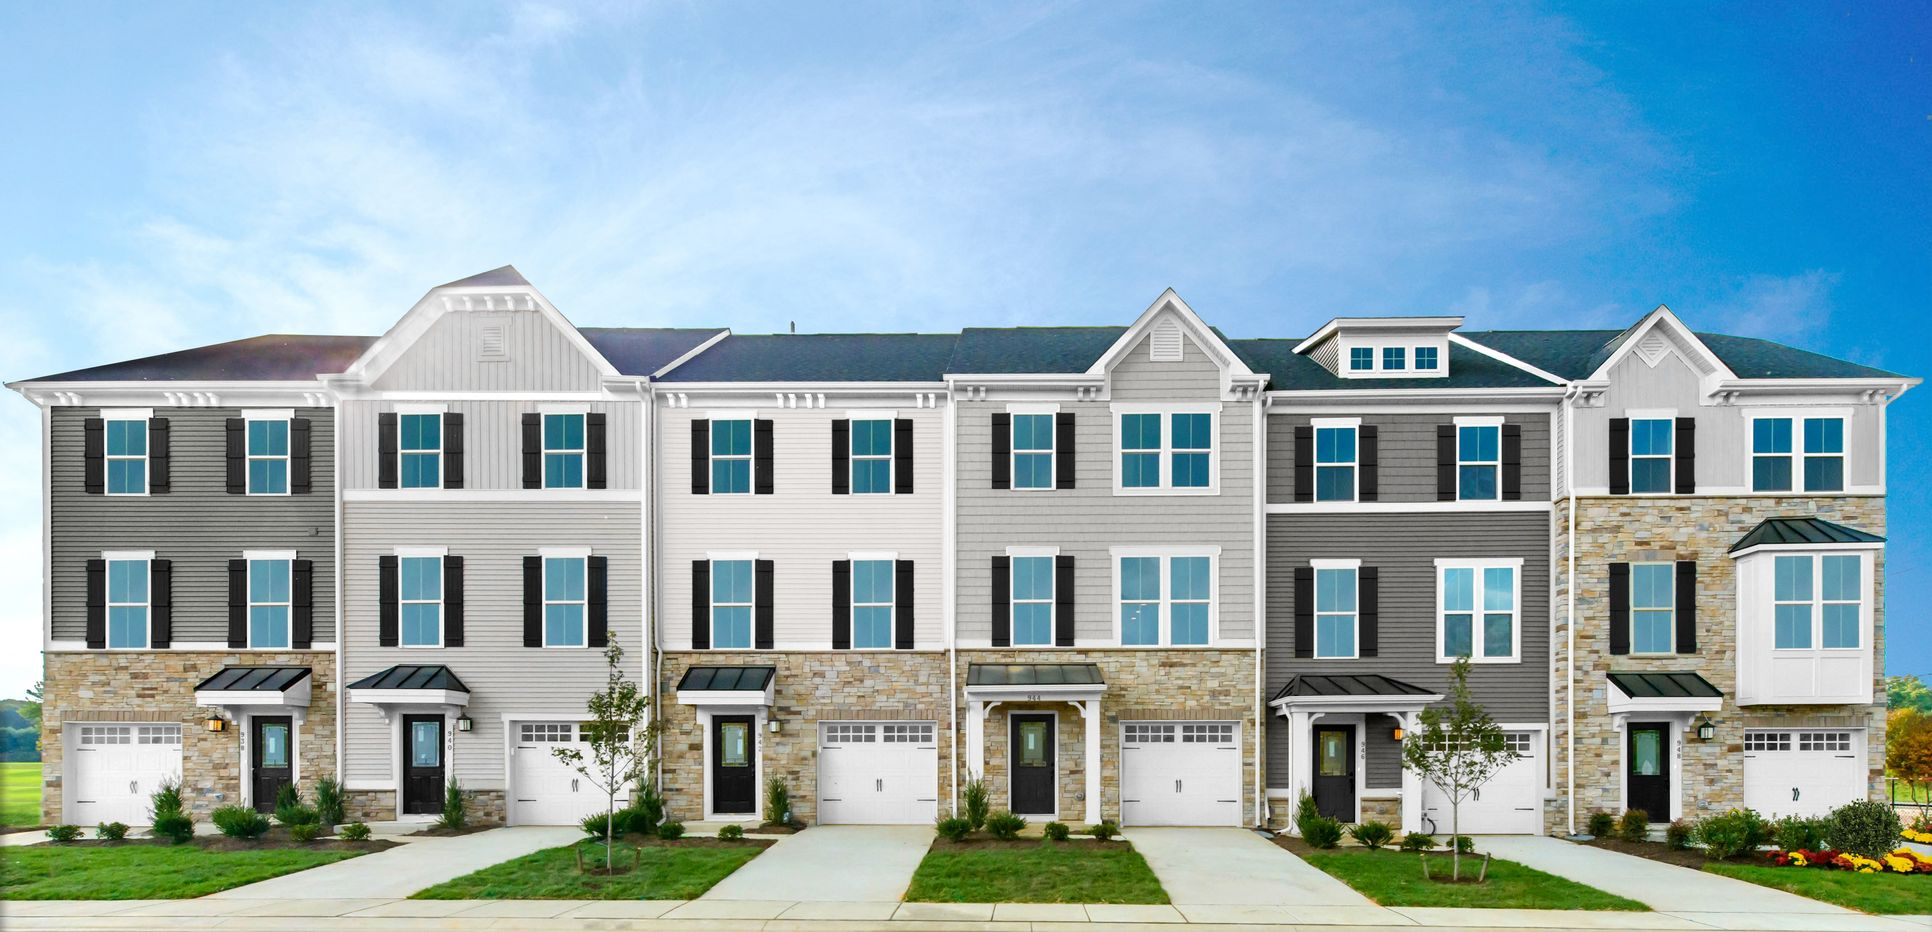 Townes At Haddon Point By Haddon Point Urban Renewal Ii Llc In Pennsauken Nj New Homes By Ryan Homes